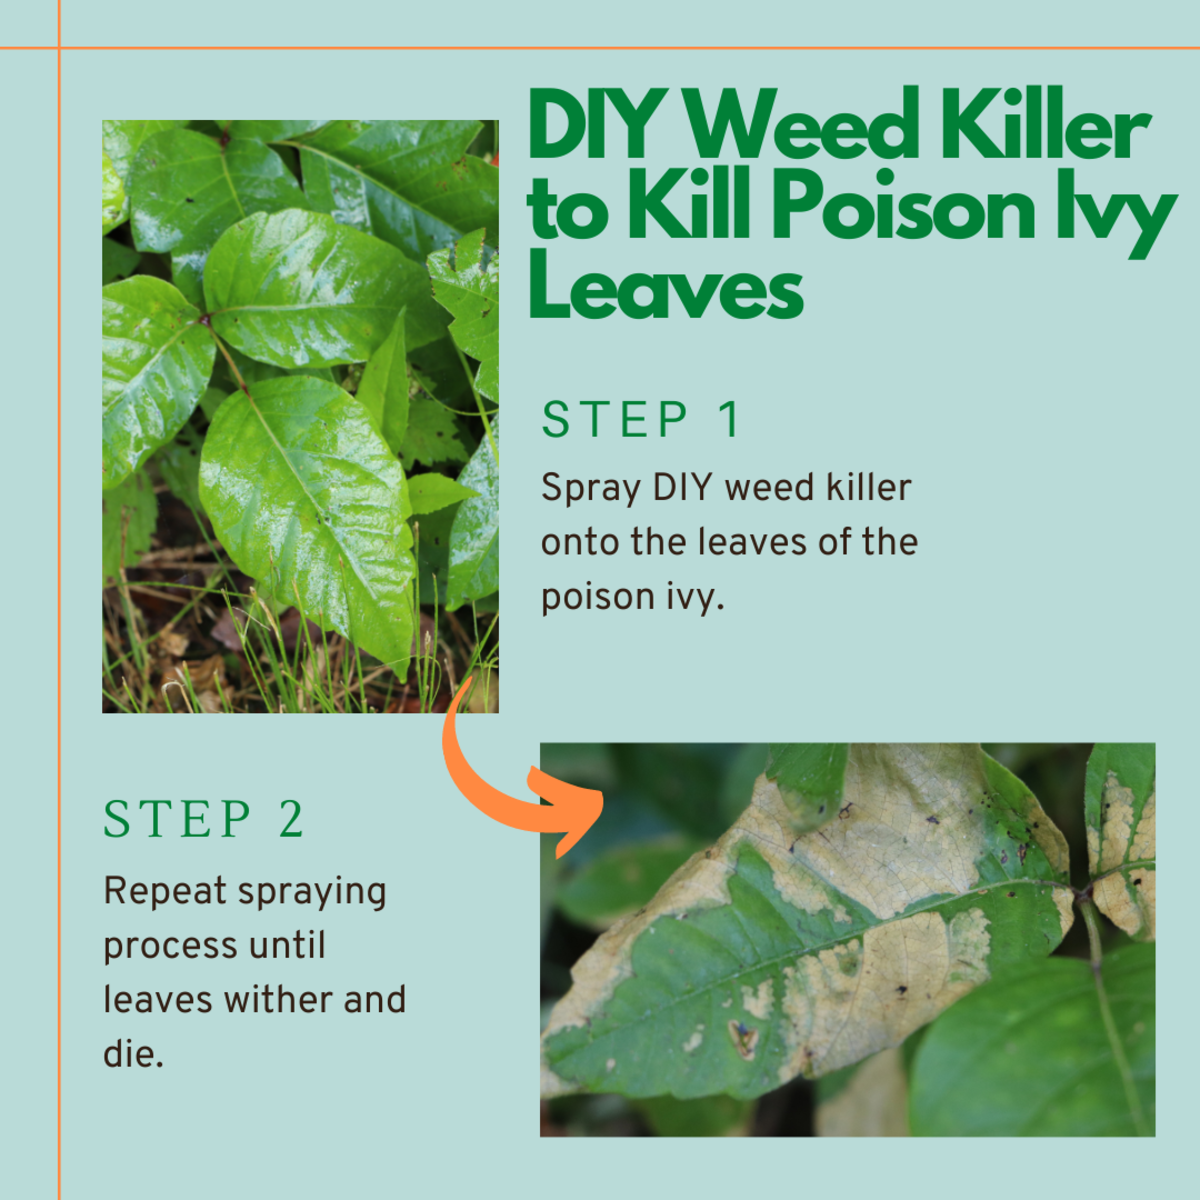 Use DIY weed killer to dehydrate poison ivy leaves and kill the top of the plant.